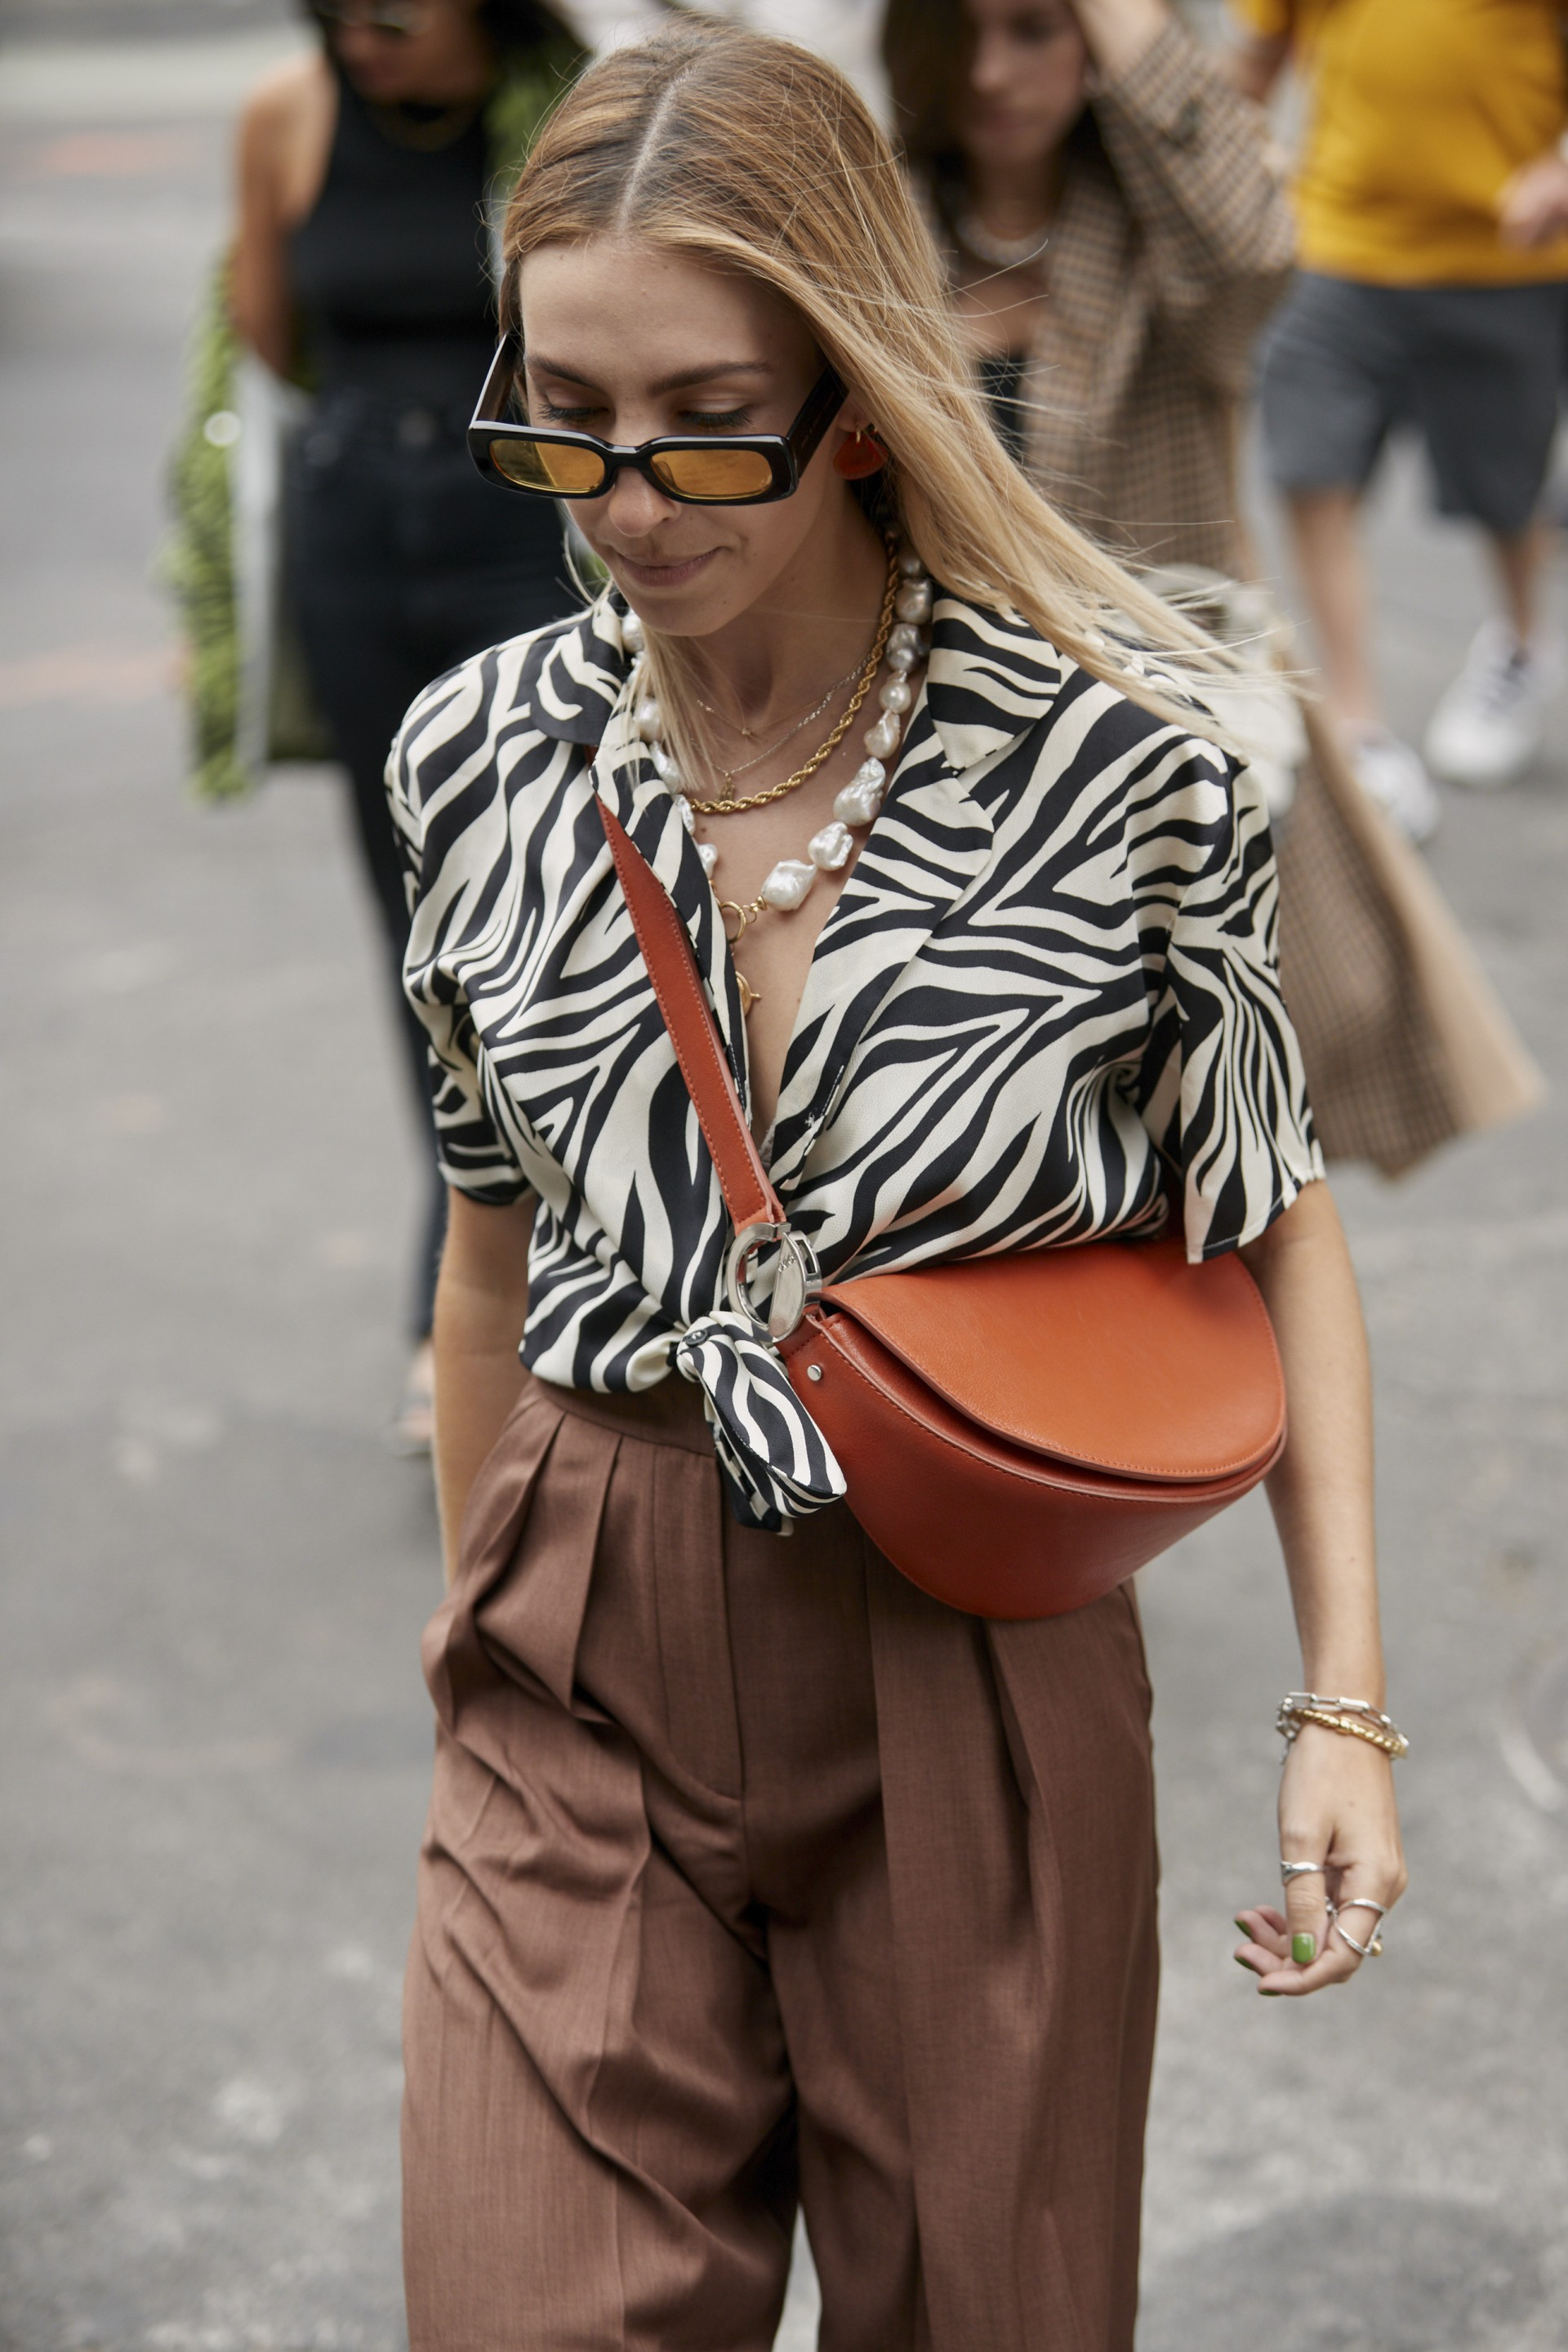 Bags We Can't Wait To Wear When This Is Over